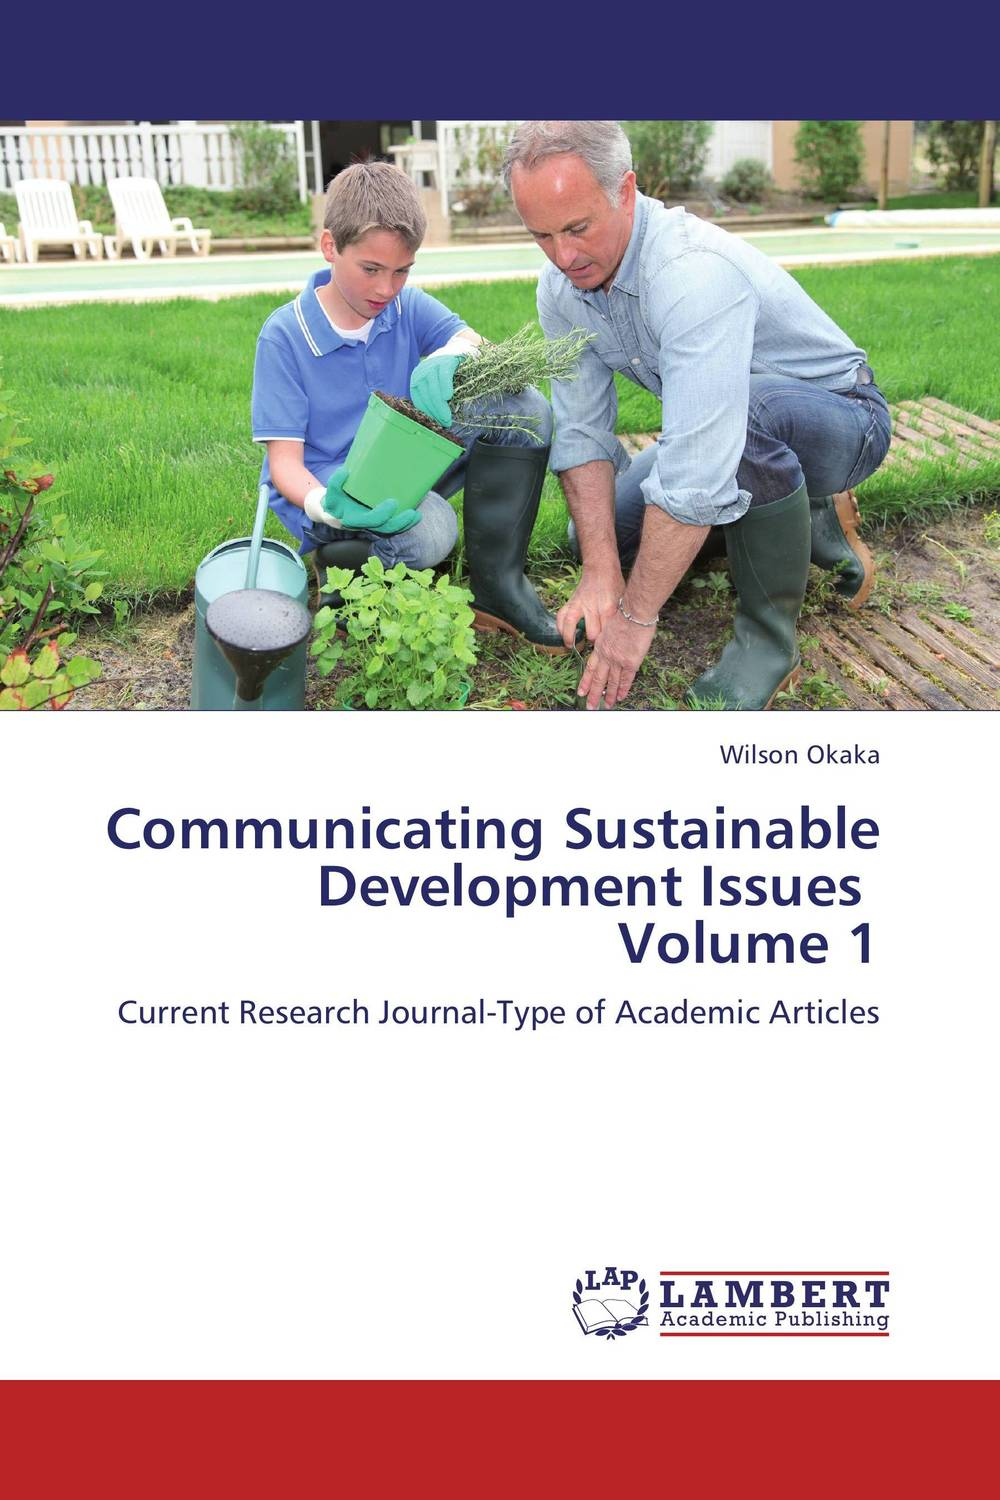 Communicating Sustainable Development Issues    Volume 1 буддийский сувенир sheng good research and development ssyf a19 10